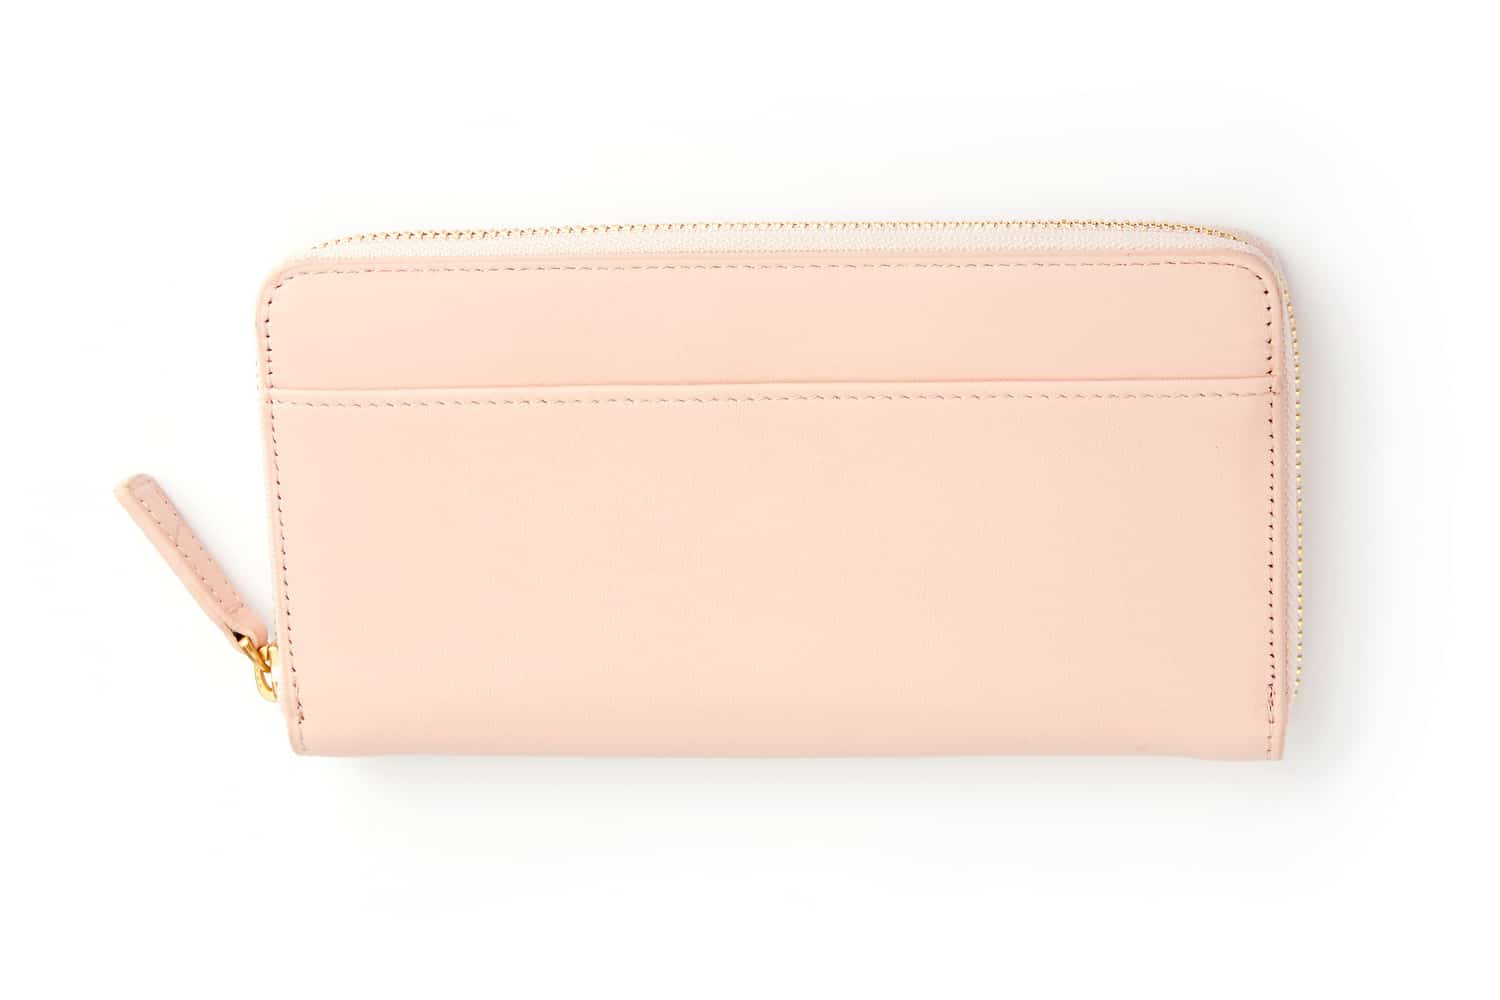 Royce New York Continental RFID Leather Zip Wallet